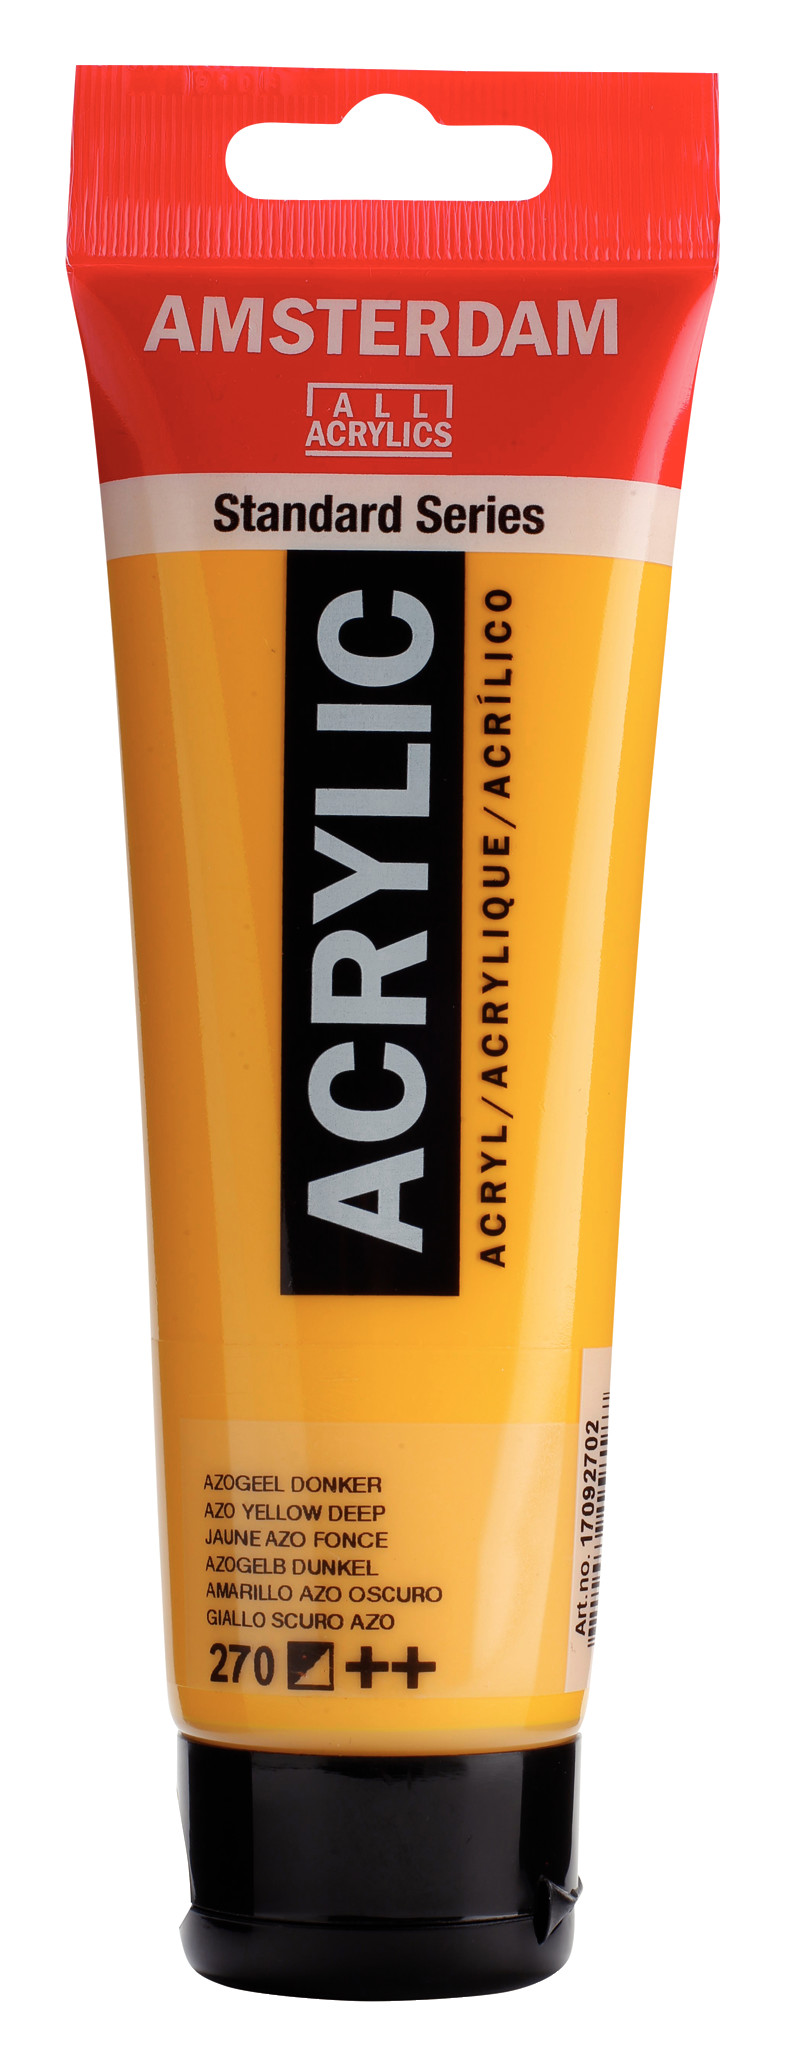 Amsterdam Standard Series Acrylic Tube 120 ml Azo yellow deep 270